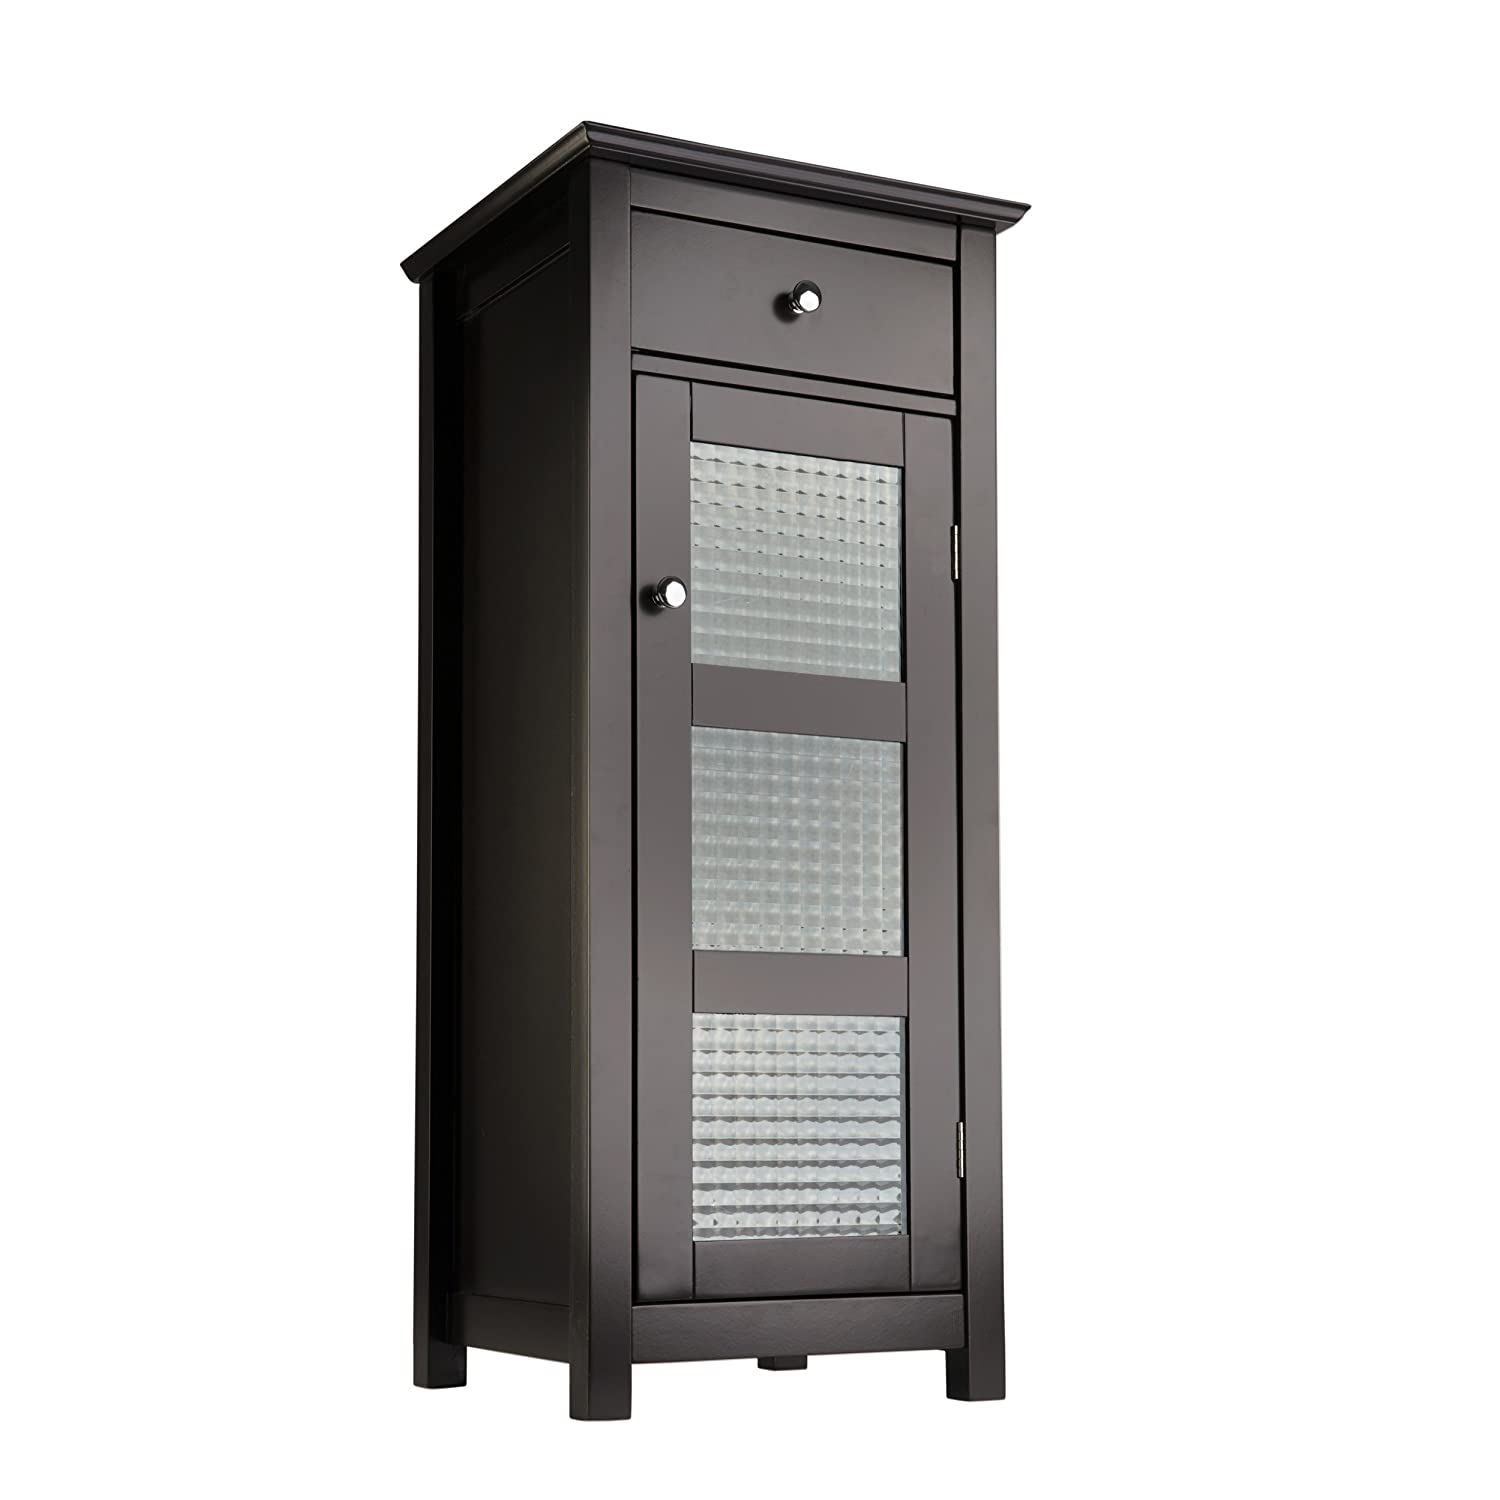 elegant home. Amazon.com: Elegant Home Fashions Chesterfield Collection Floor Cabinet With One Door And Drawer, Espresso: Kitchen \u0026 Dining